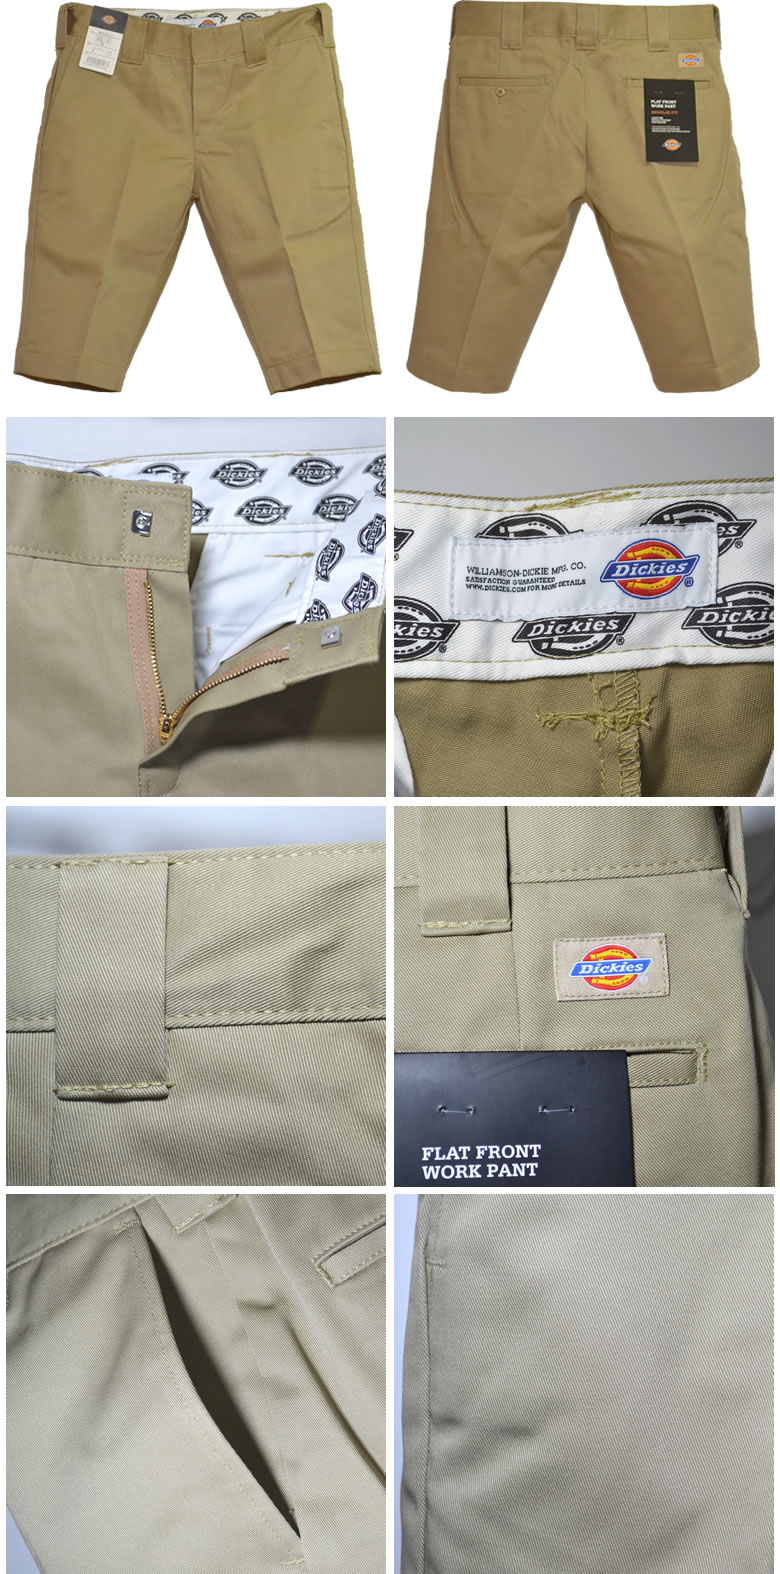 Dickies WD874H5 Japan planning lowridswork 5-minute-length pants shorts